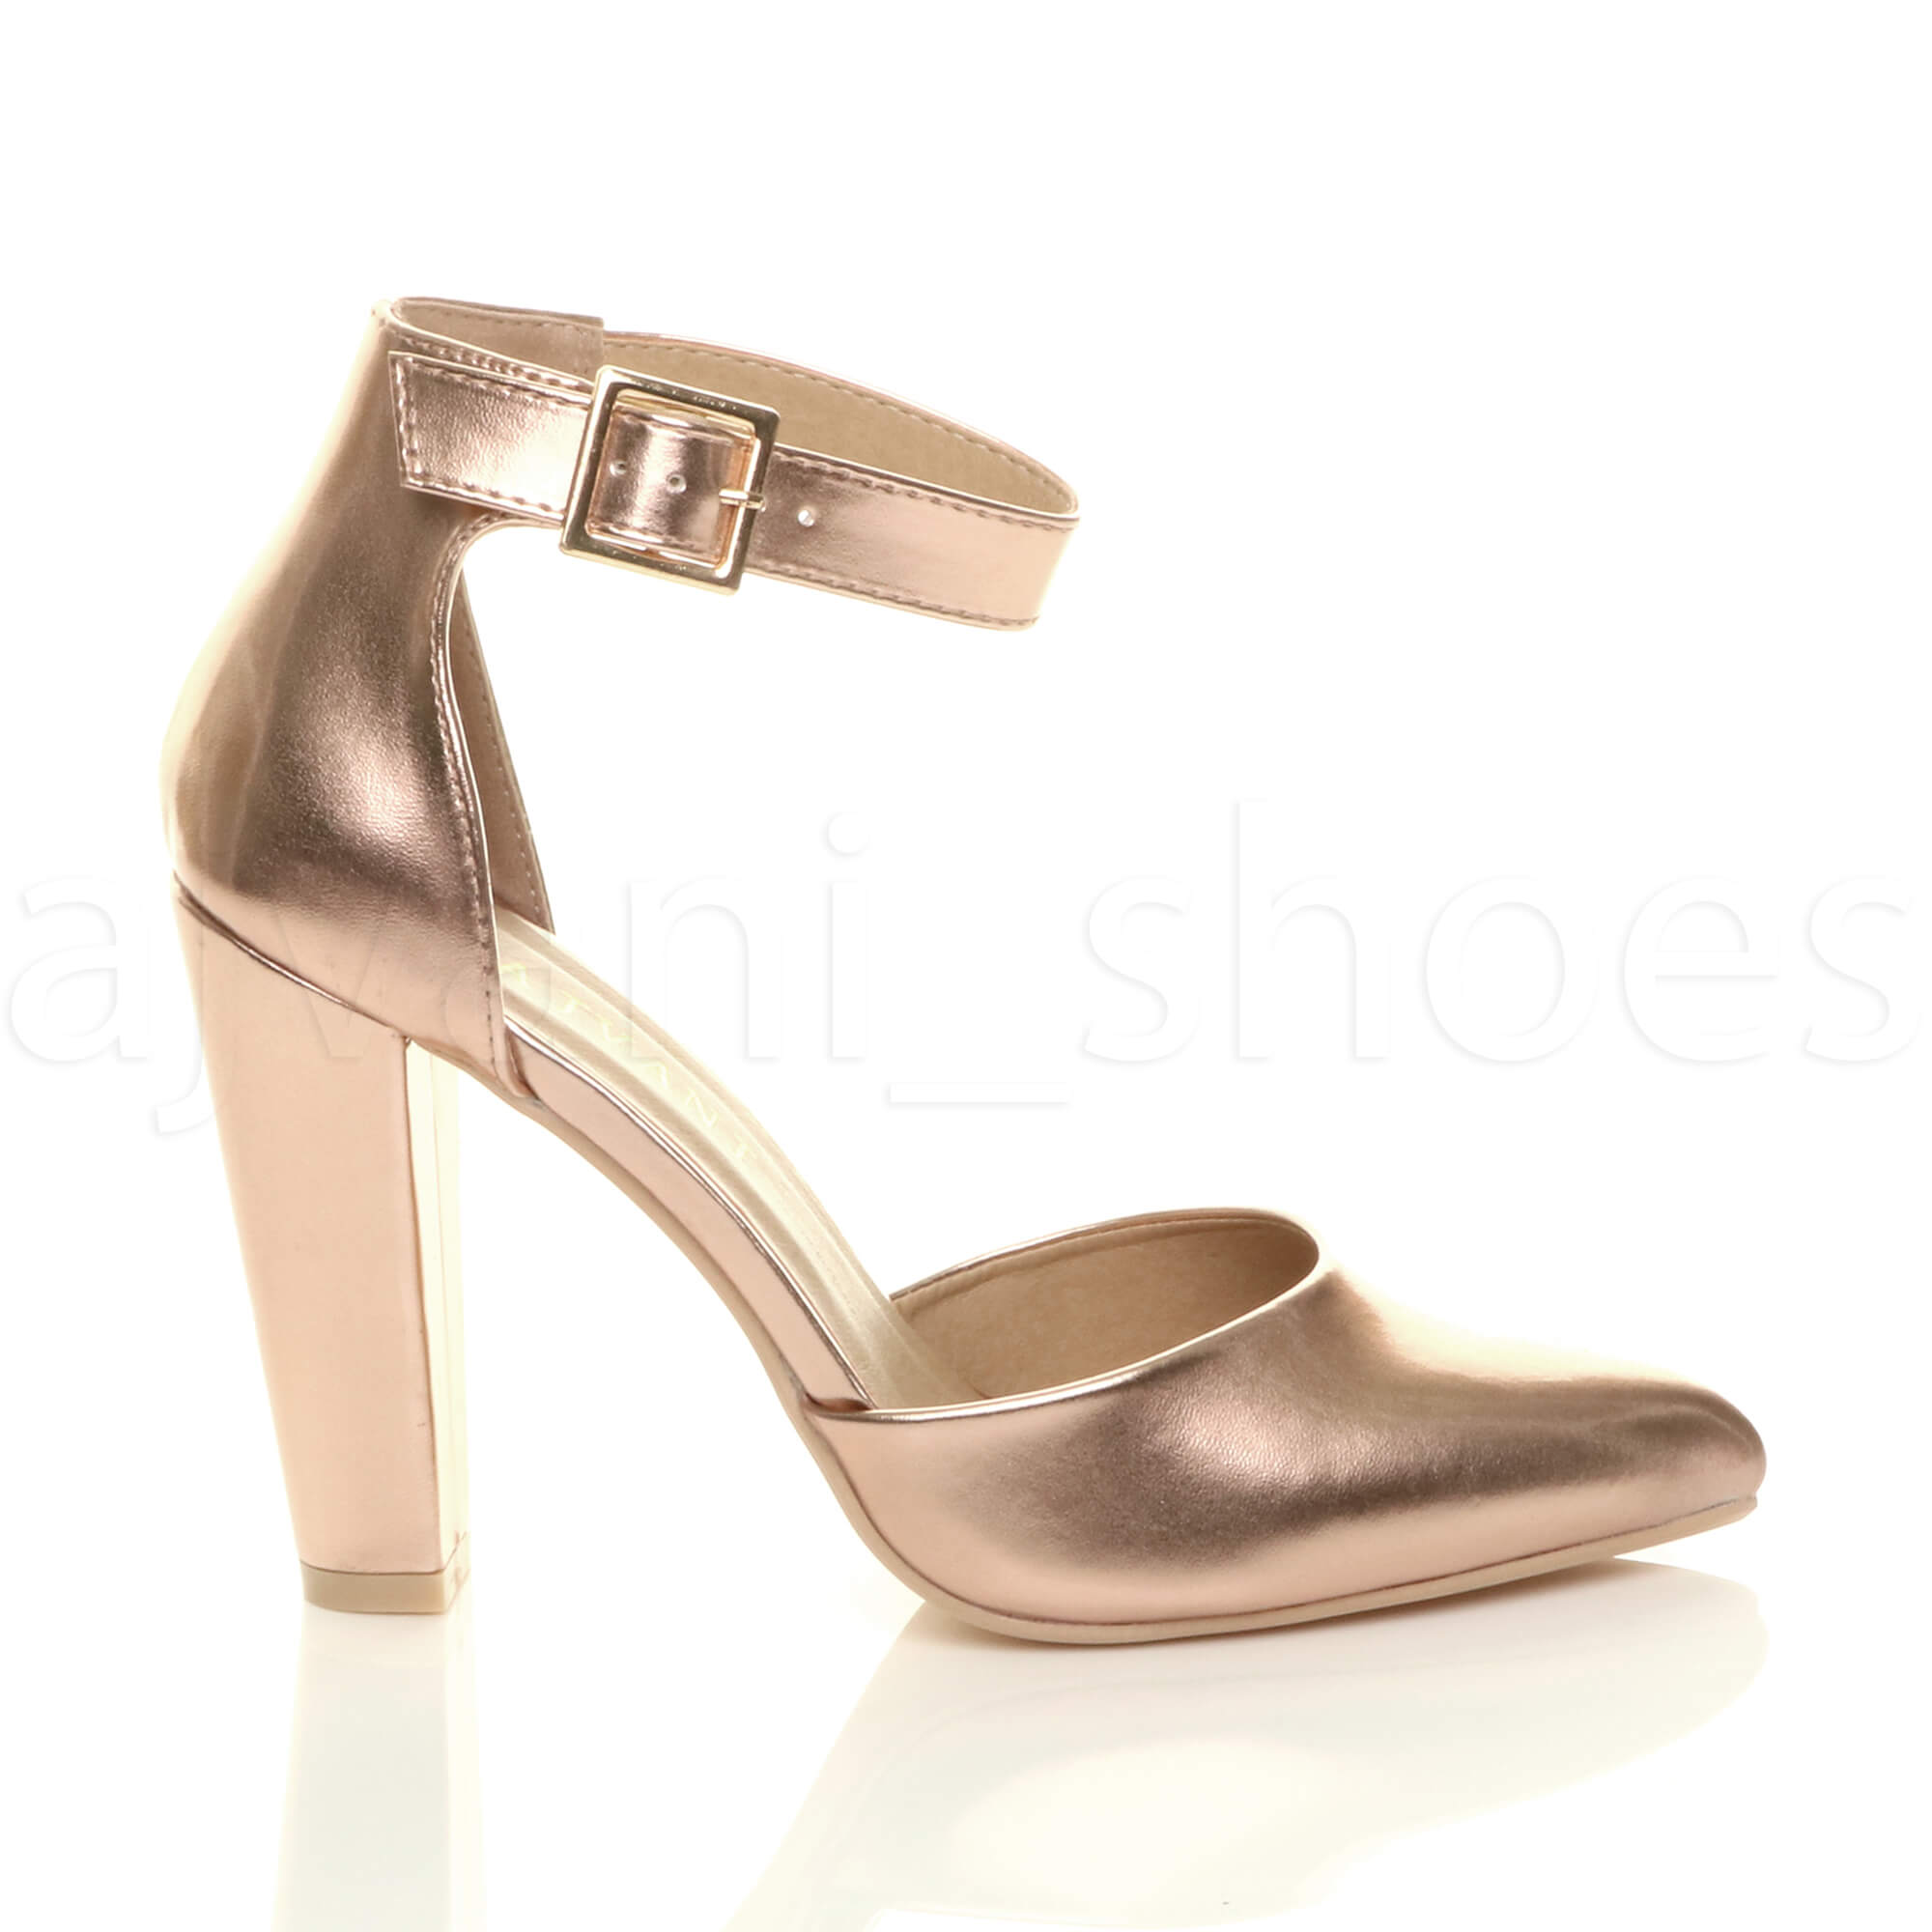 WOMENS-LADIES-HIGH-BLOCK-HEEL-ANKLE-STRAP-BUCKLE-POINTED-COURT-SHOES-SIZE thumbnail 143